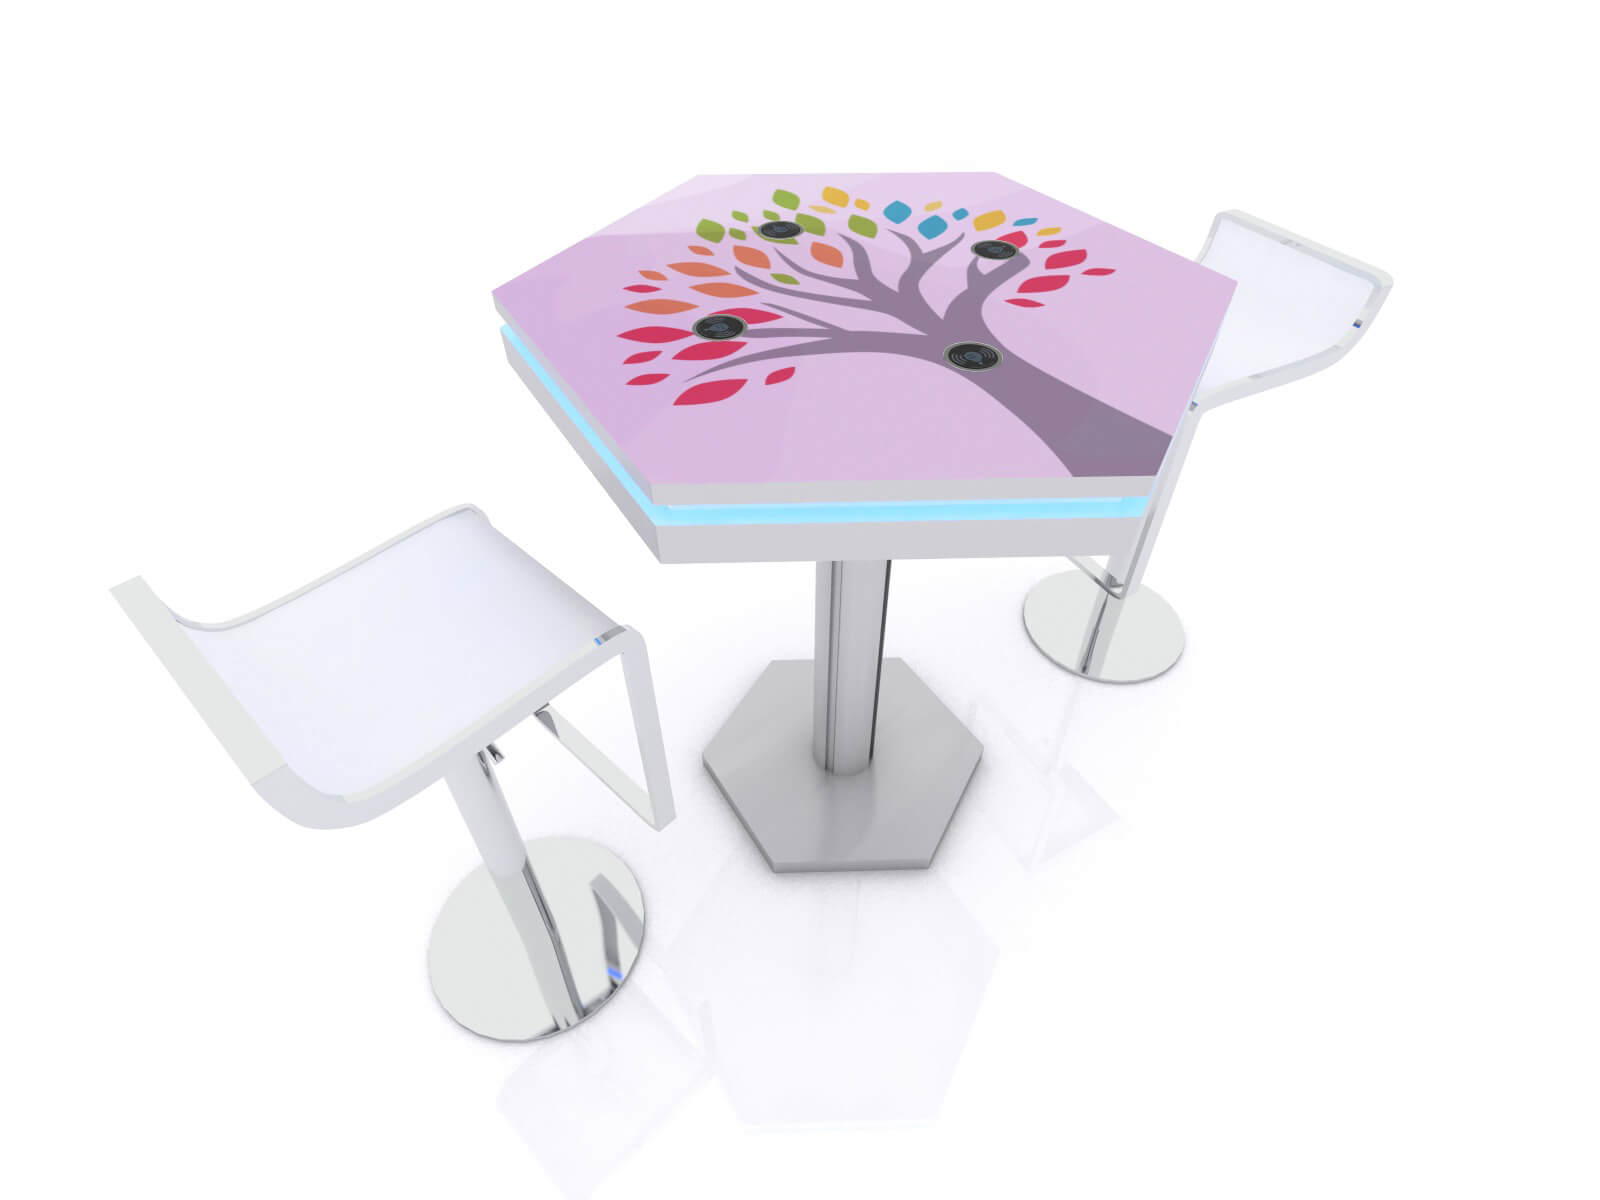 MOD-1465 Wireless Trade Show and Event Charging Bistro Table - image 4